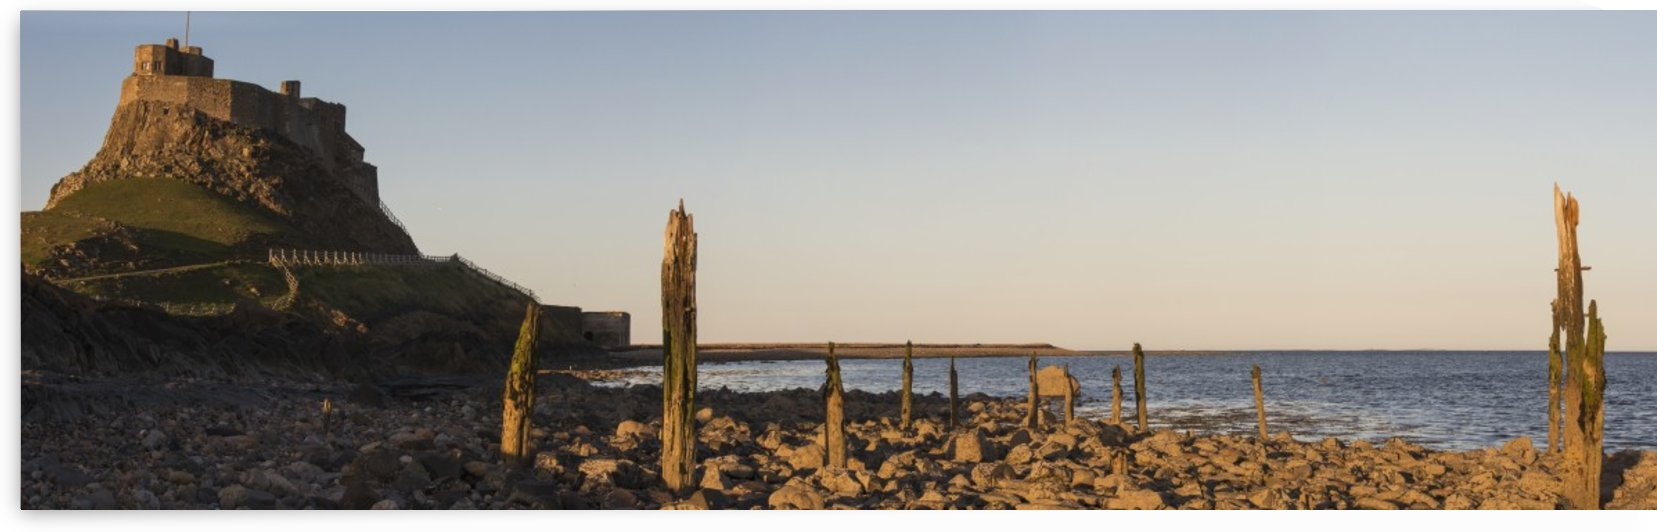 Lindisfarne Castle; Holy Island, Northumberland, England by PacificStock